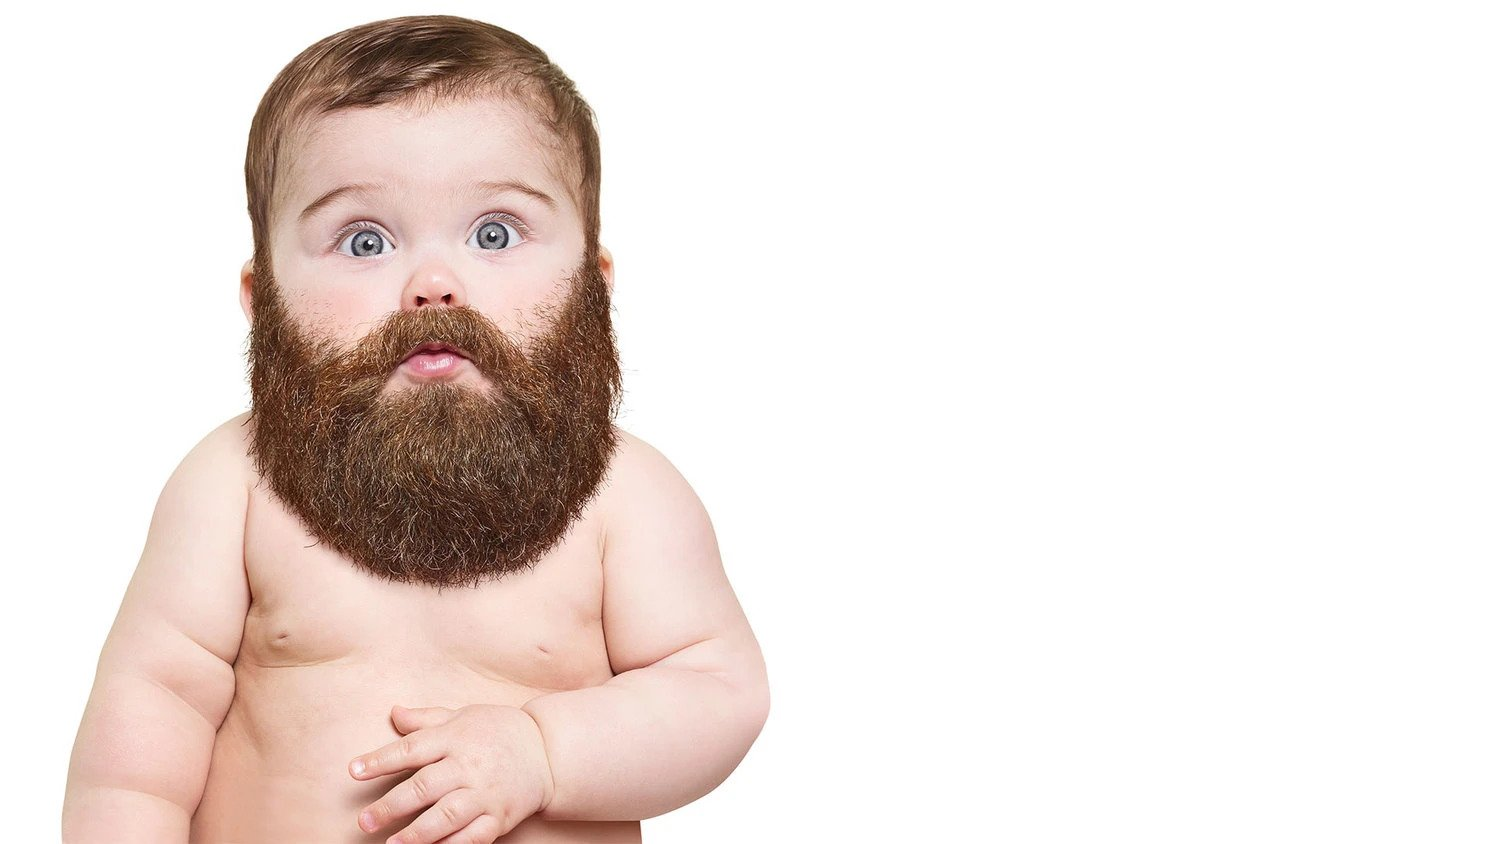 5 Helpful Tips on How to Grow a Flattering Beard for the First Time